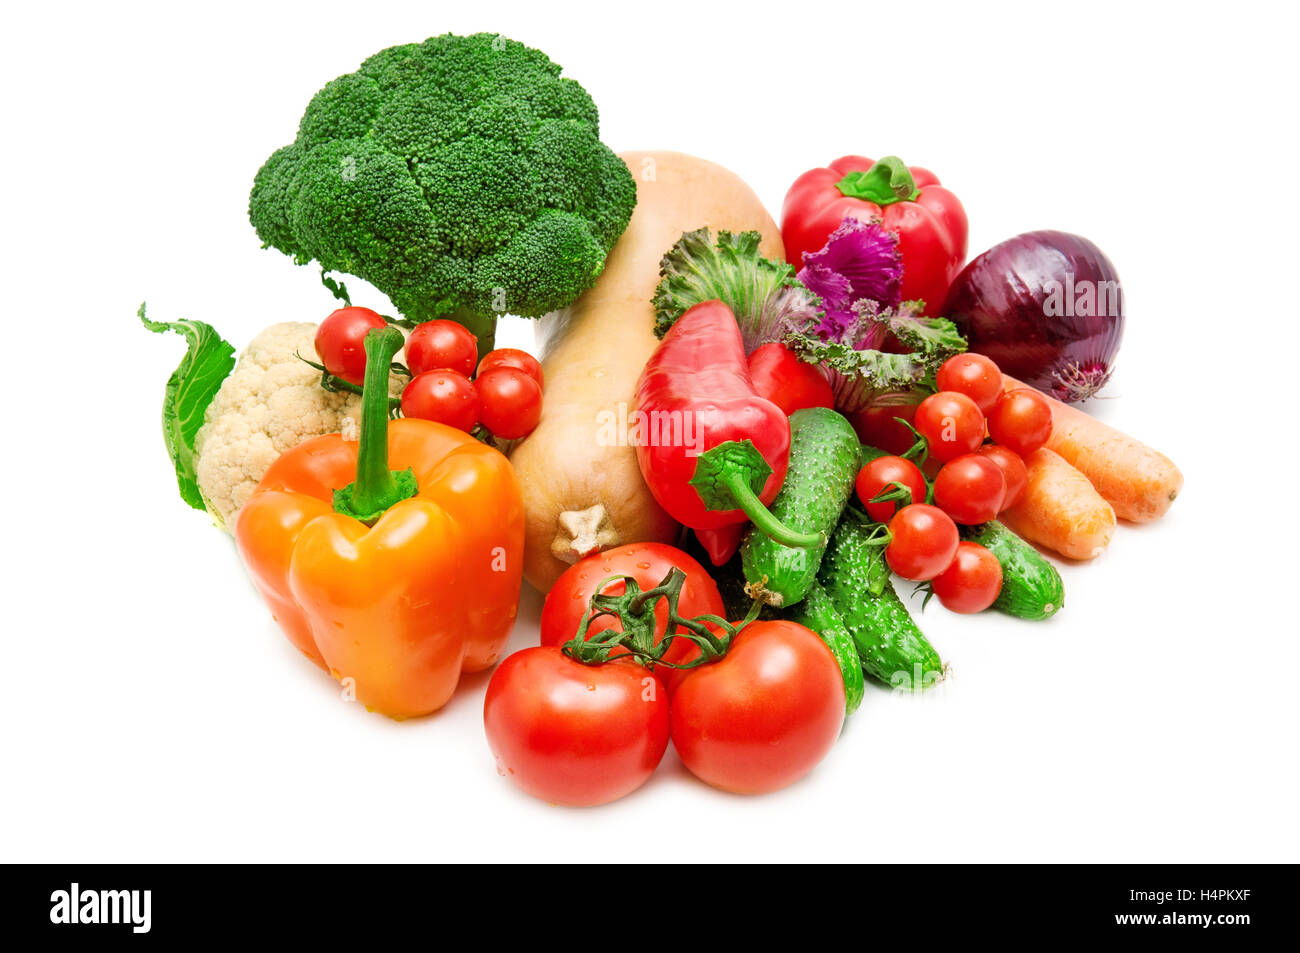 vegetable isolated on a white background - Stock Image